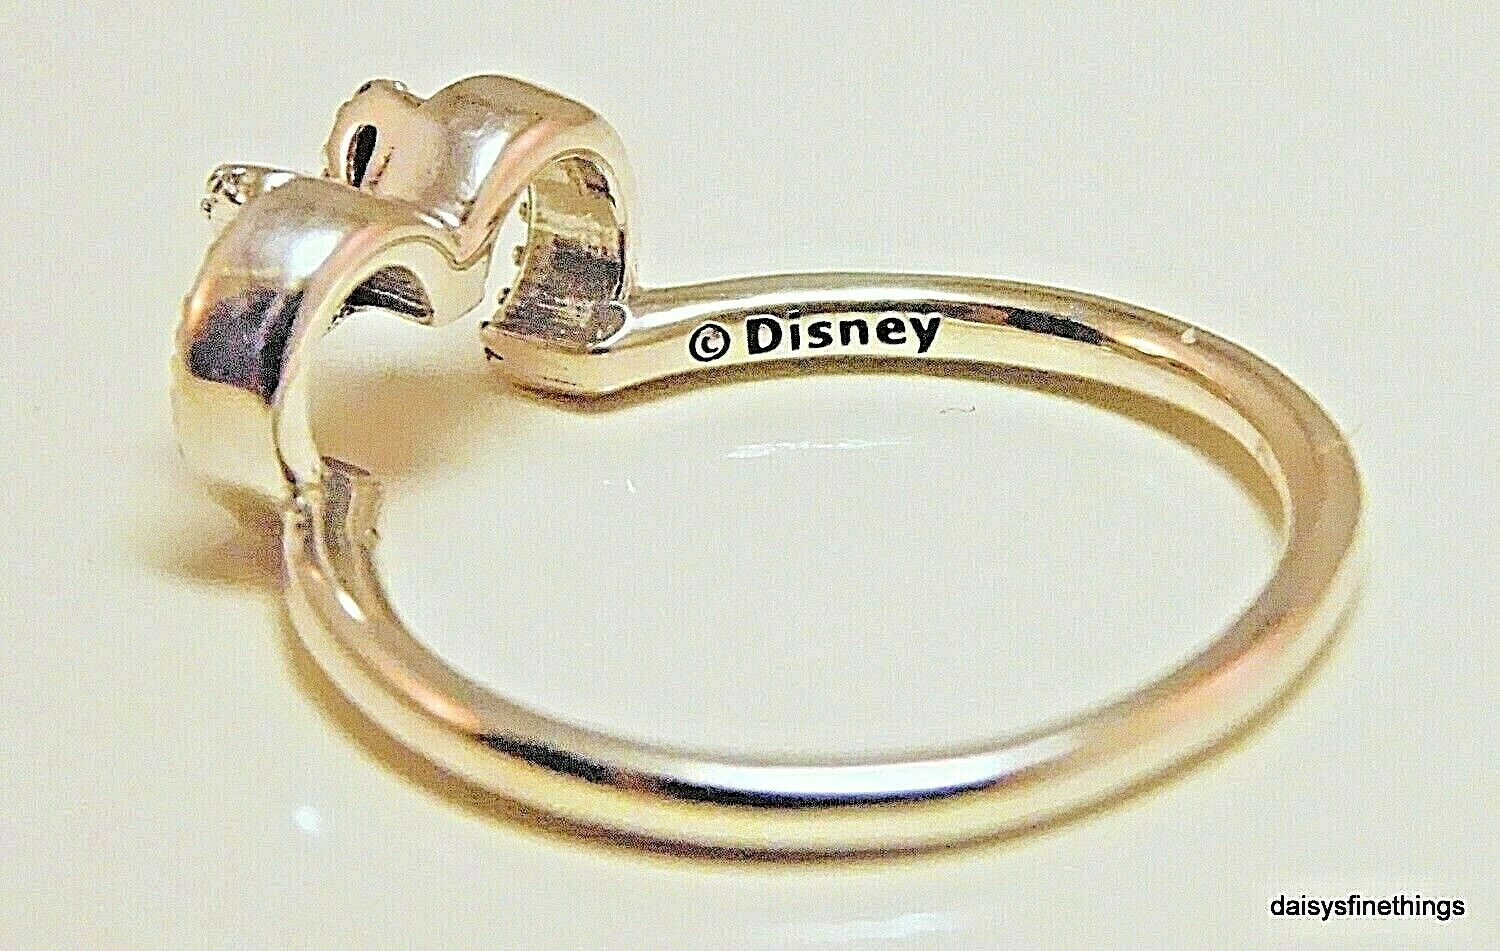 Nwt Authentic Pandora Disney Minnie Silhouette Ring #197509Cz Multiple Size With 2017 Disney Minnie Silhouette Rings (Gallery 21 of 25)